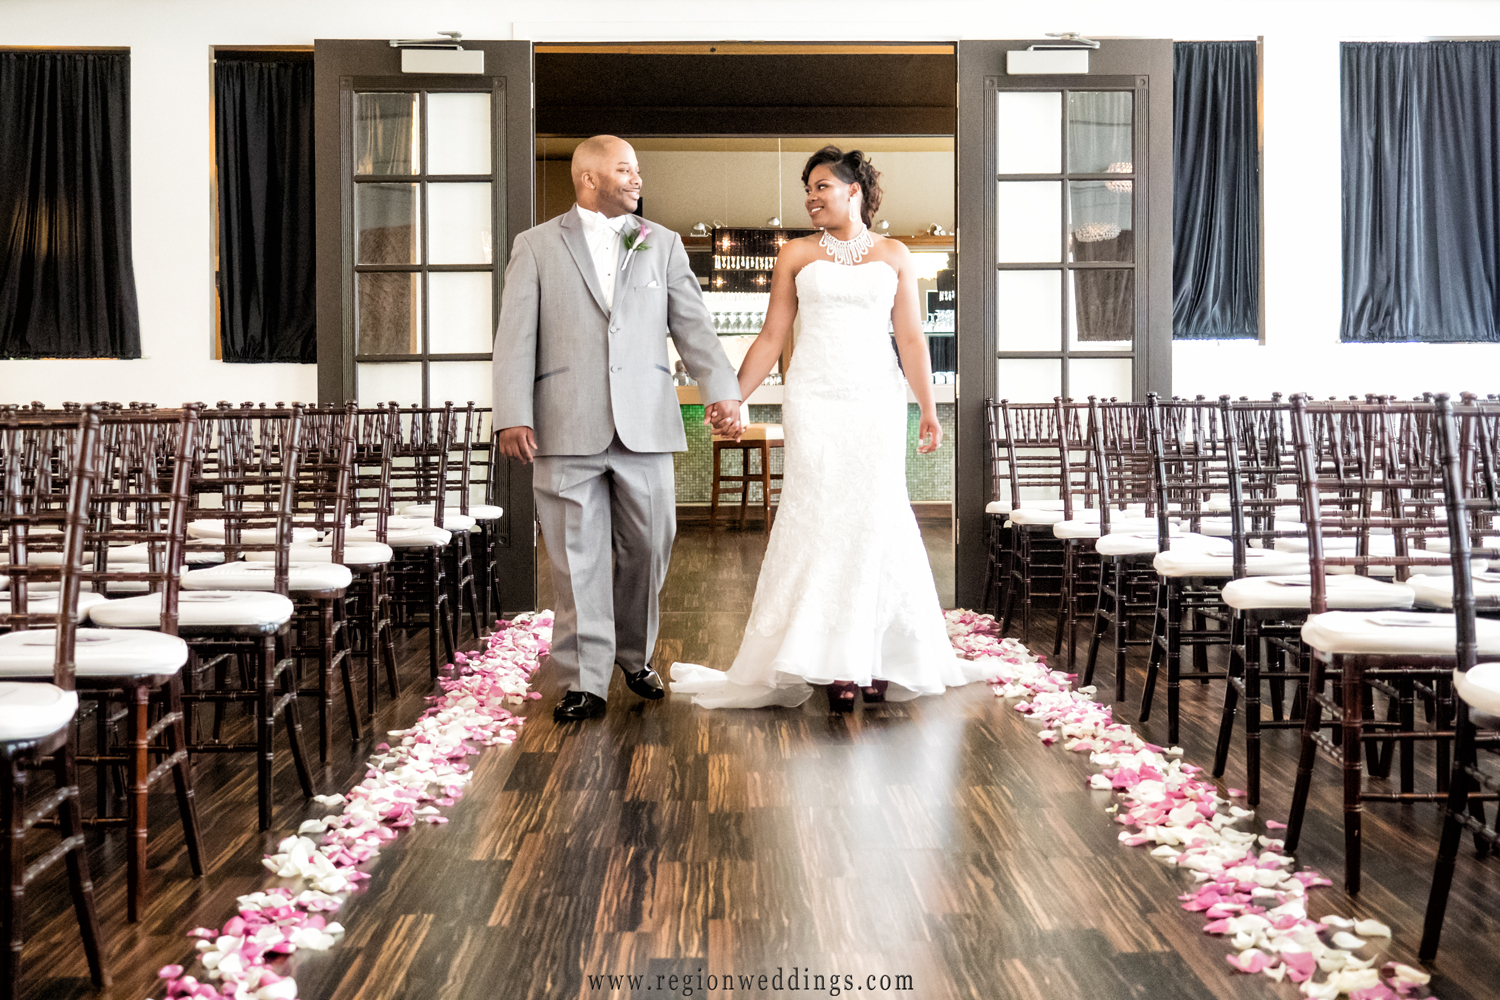 The bride and groom stroll through the center aisle of The Allure between pink and white petals.